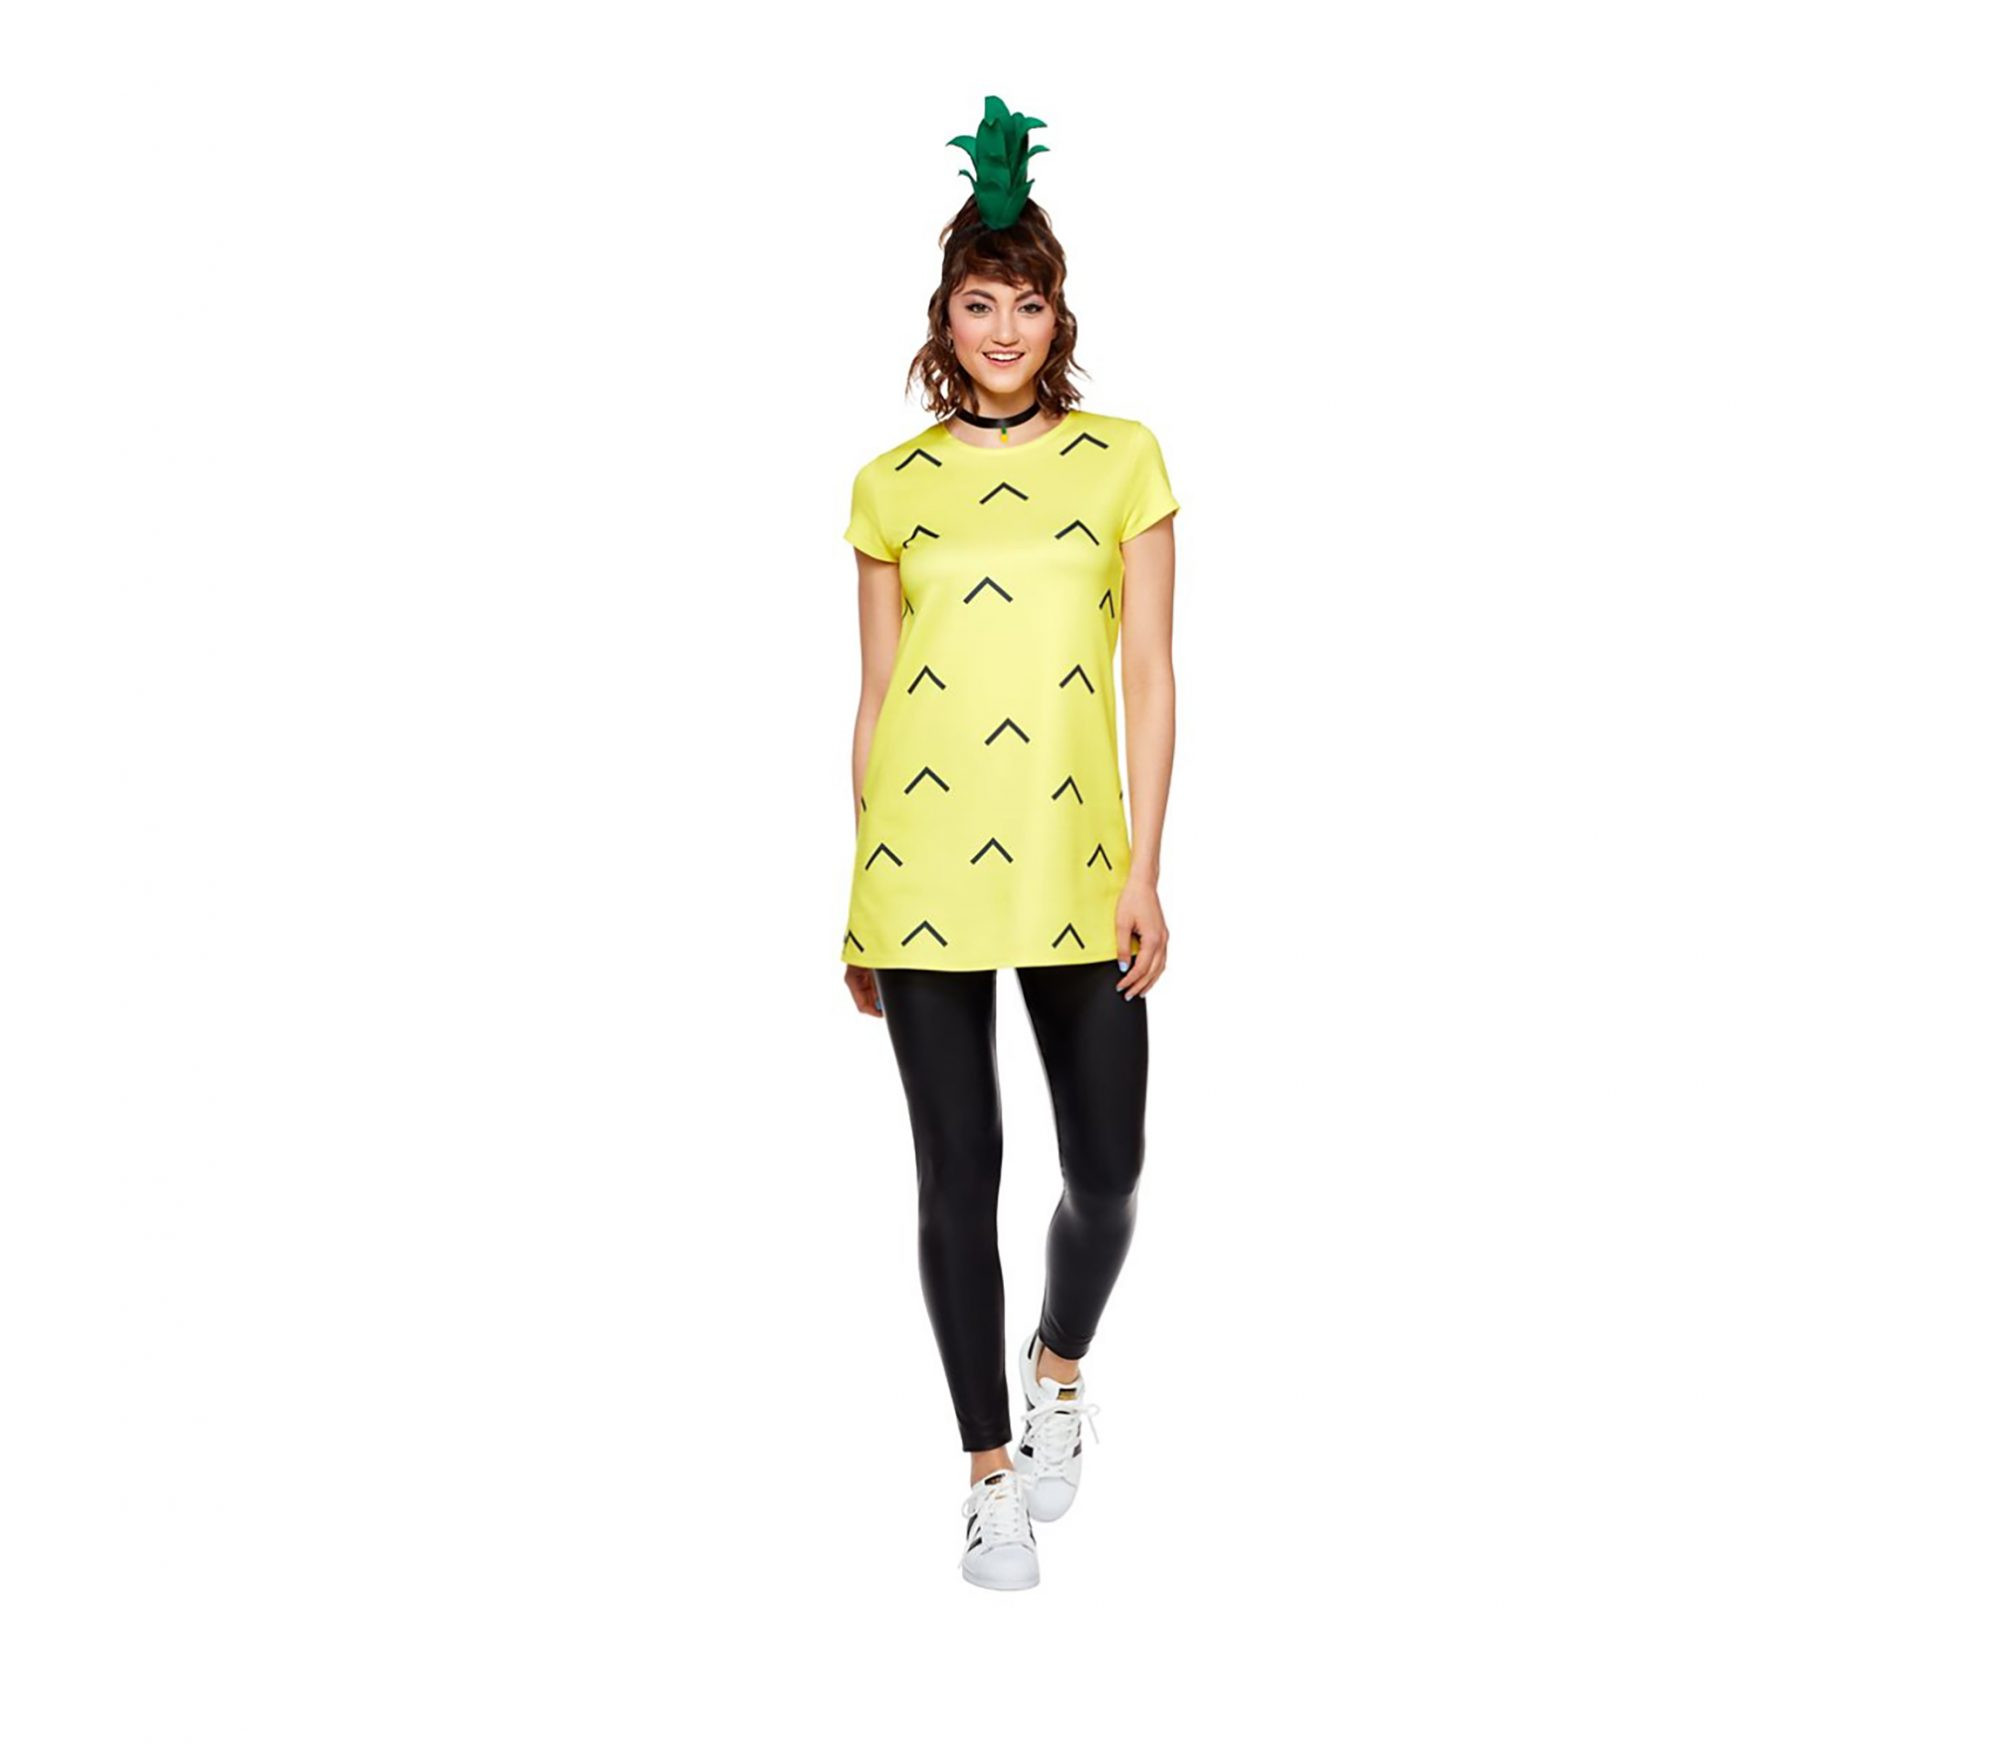 1709w-Pineapple-Costume.jpg